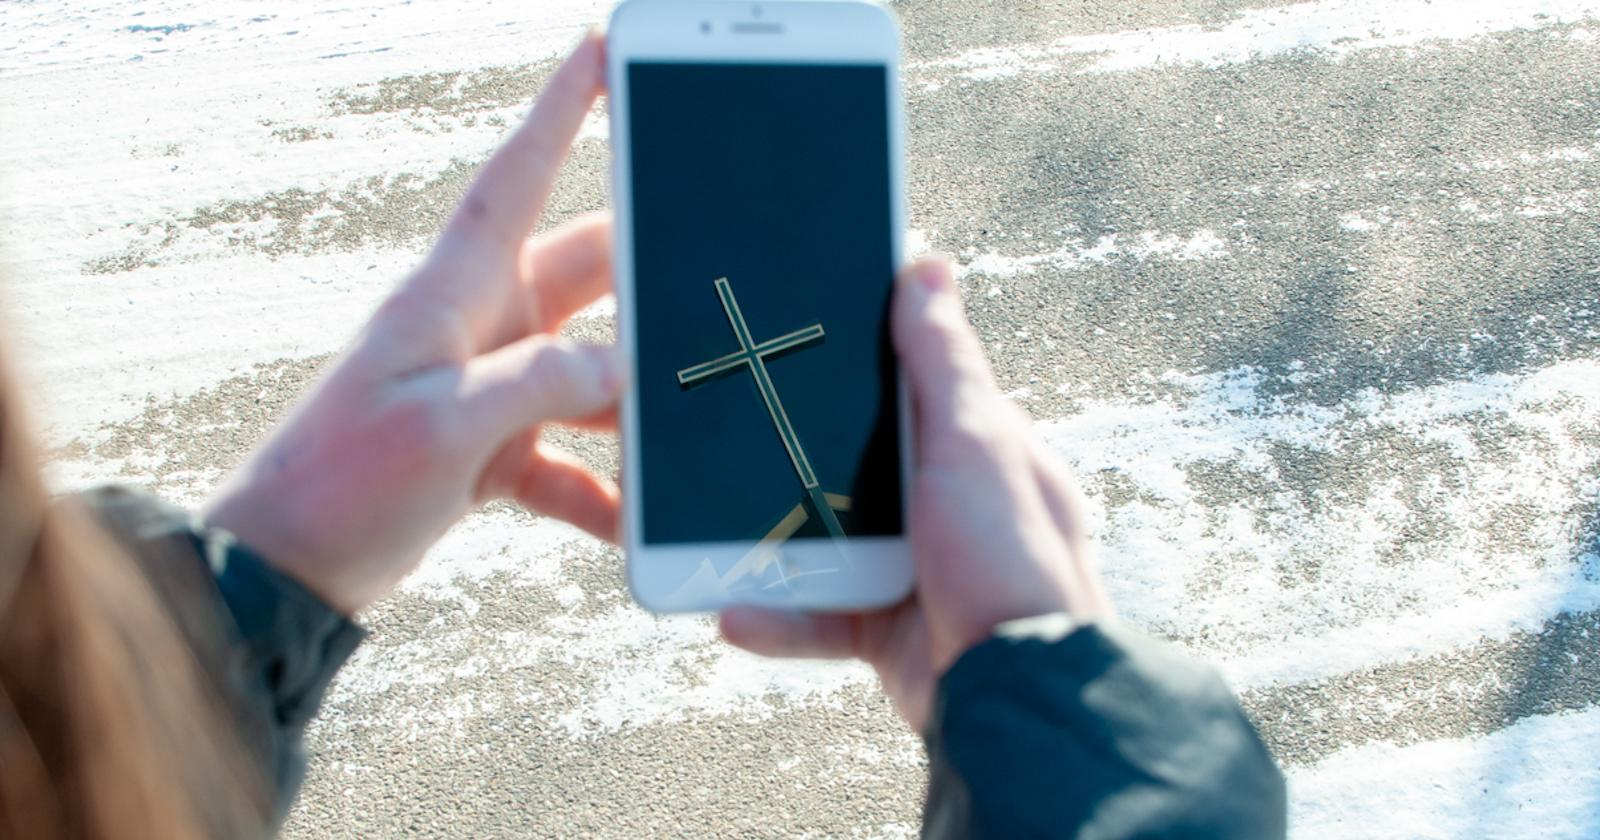 Why We Need Church in the Digital Age